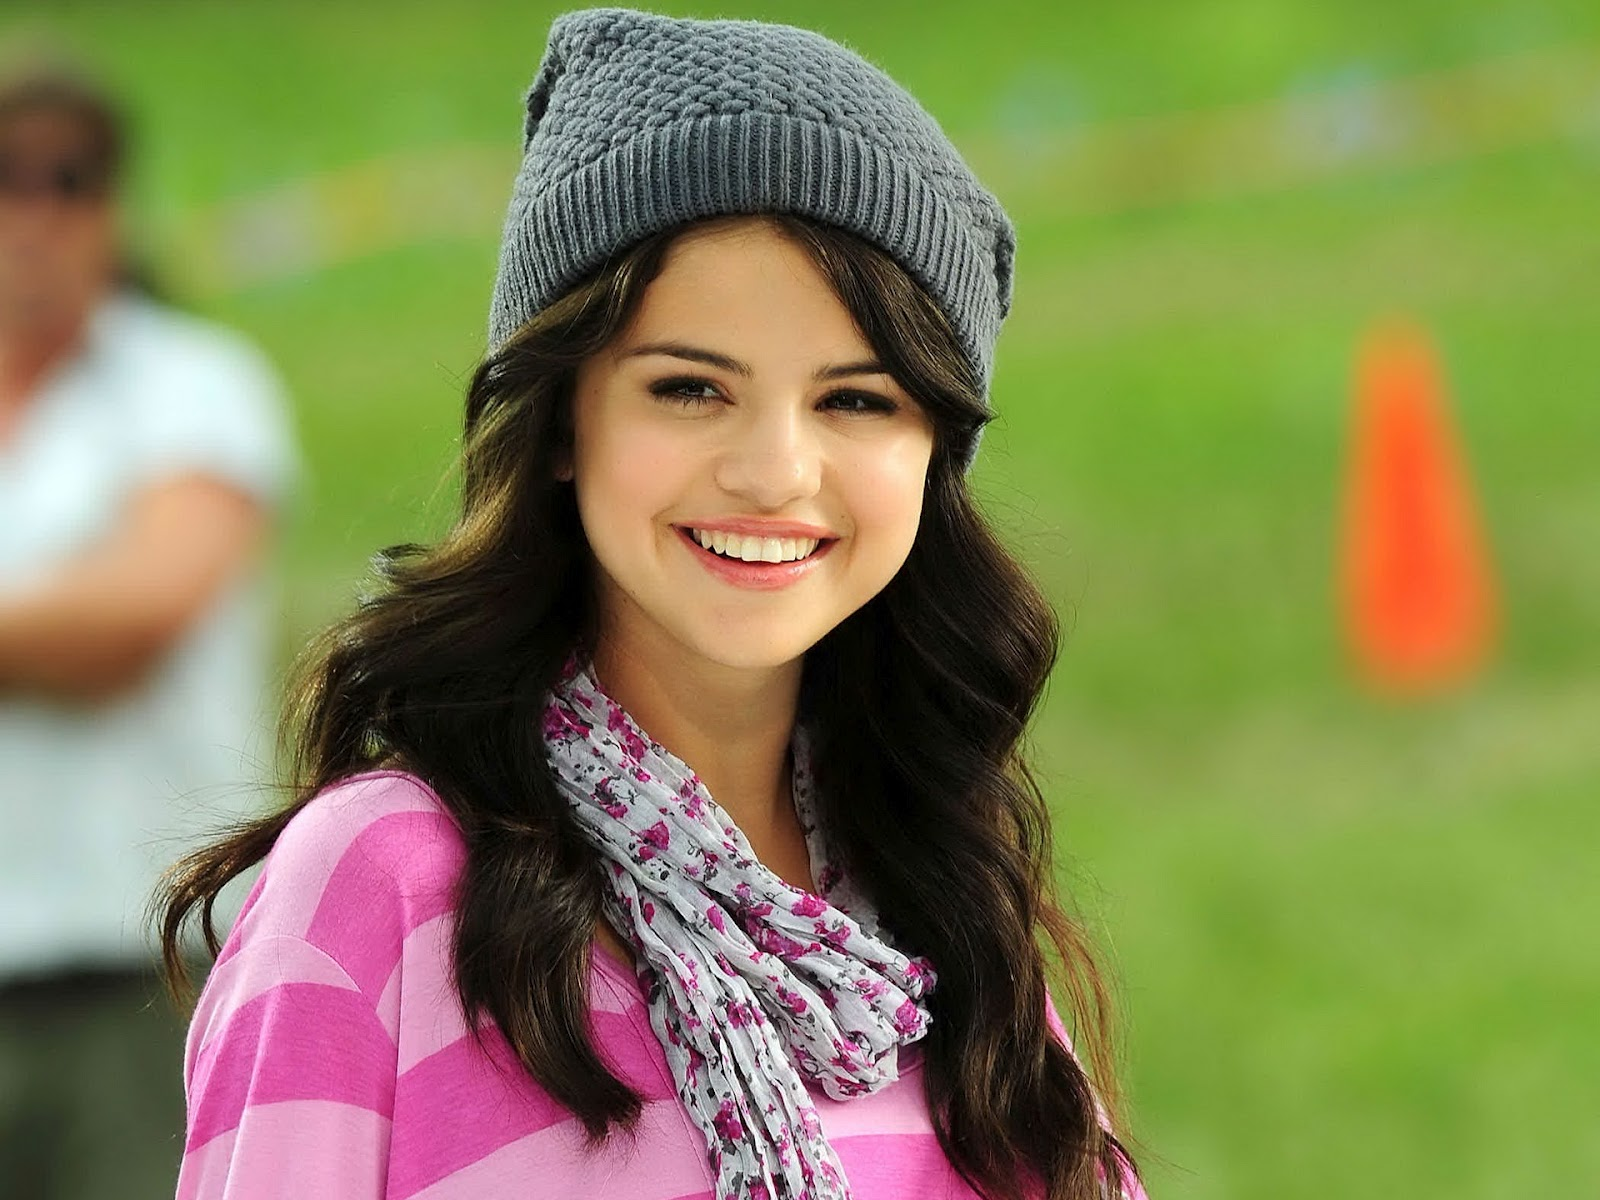 Hd Wallpapers N Backgrounds Selena Gomez Cute Hd Wallpaper